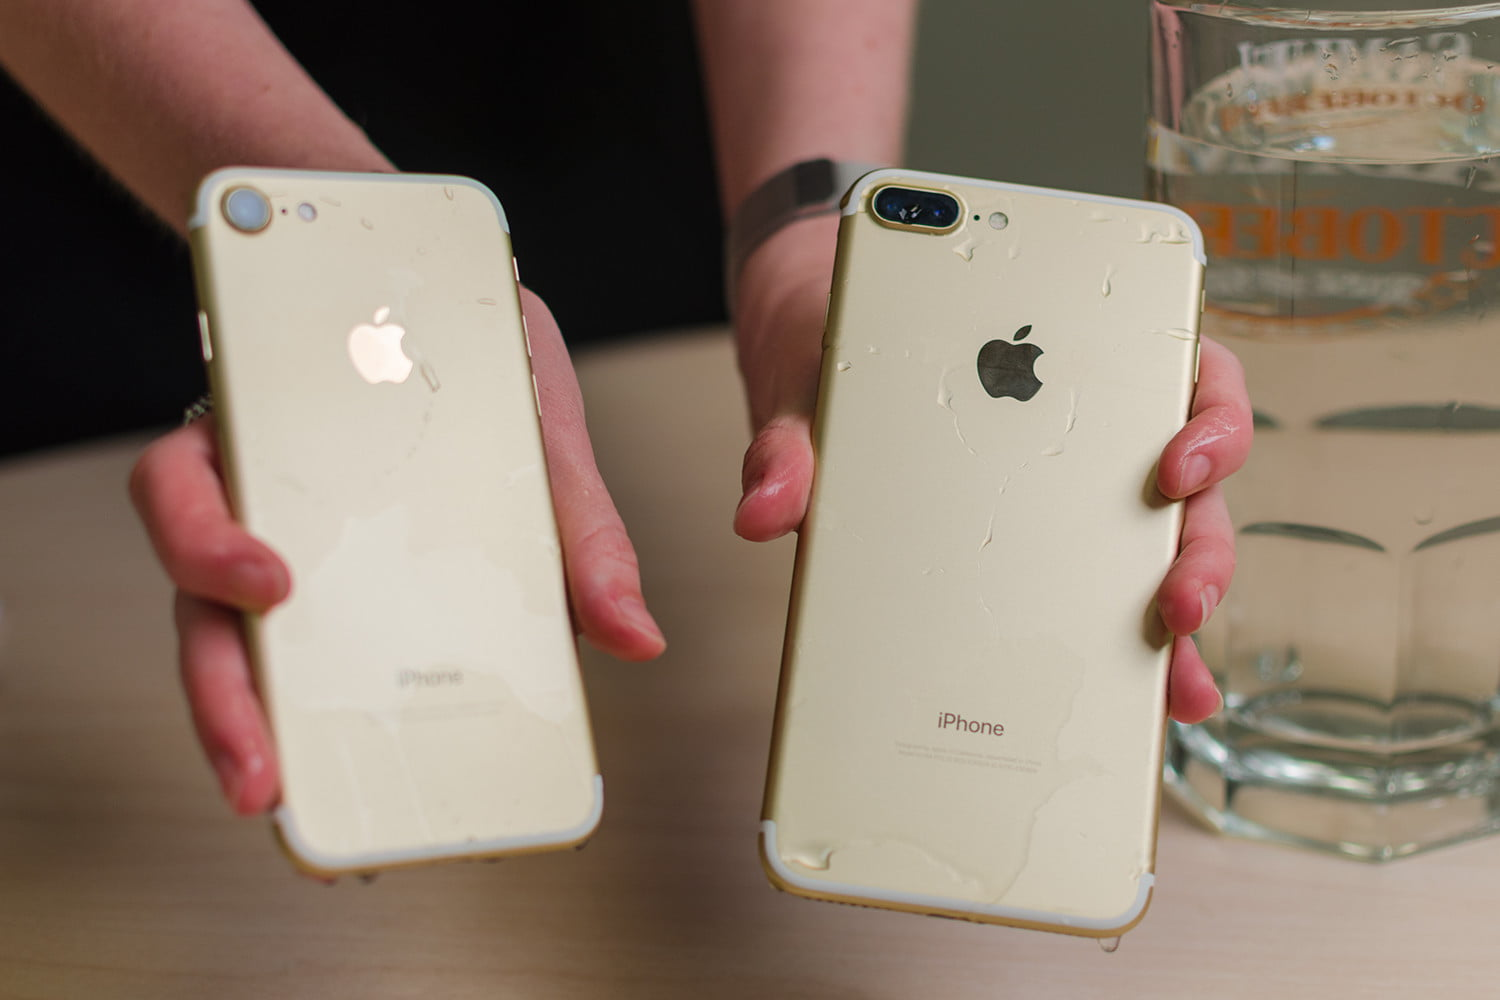 How To Get Rid Of Old Apple Id On Iphone